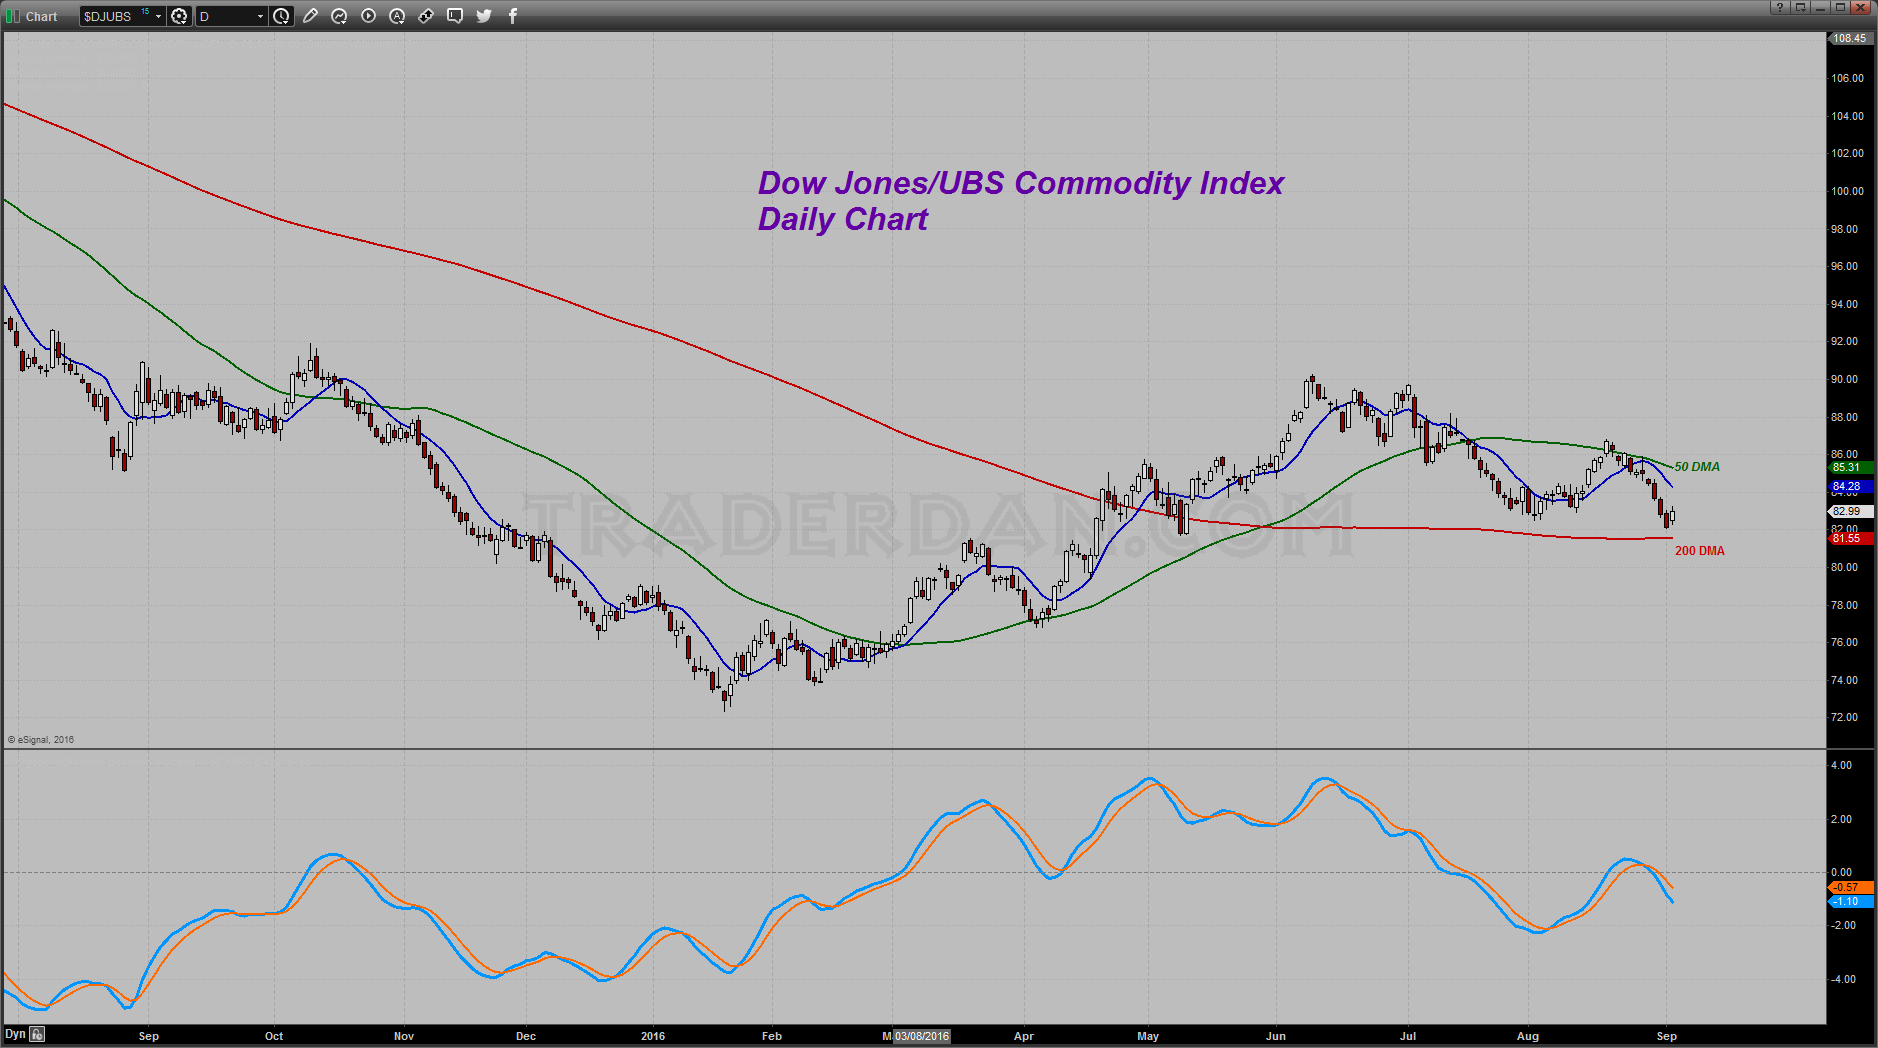 Dow Jones/UBS Commodity Index Daily